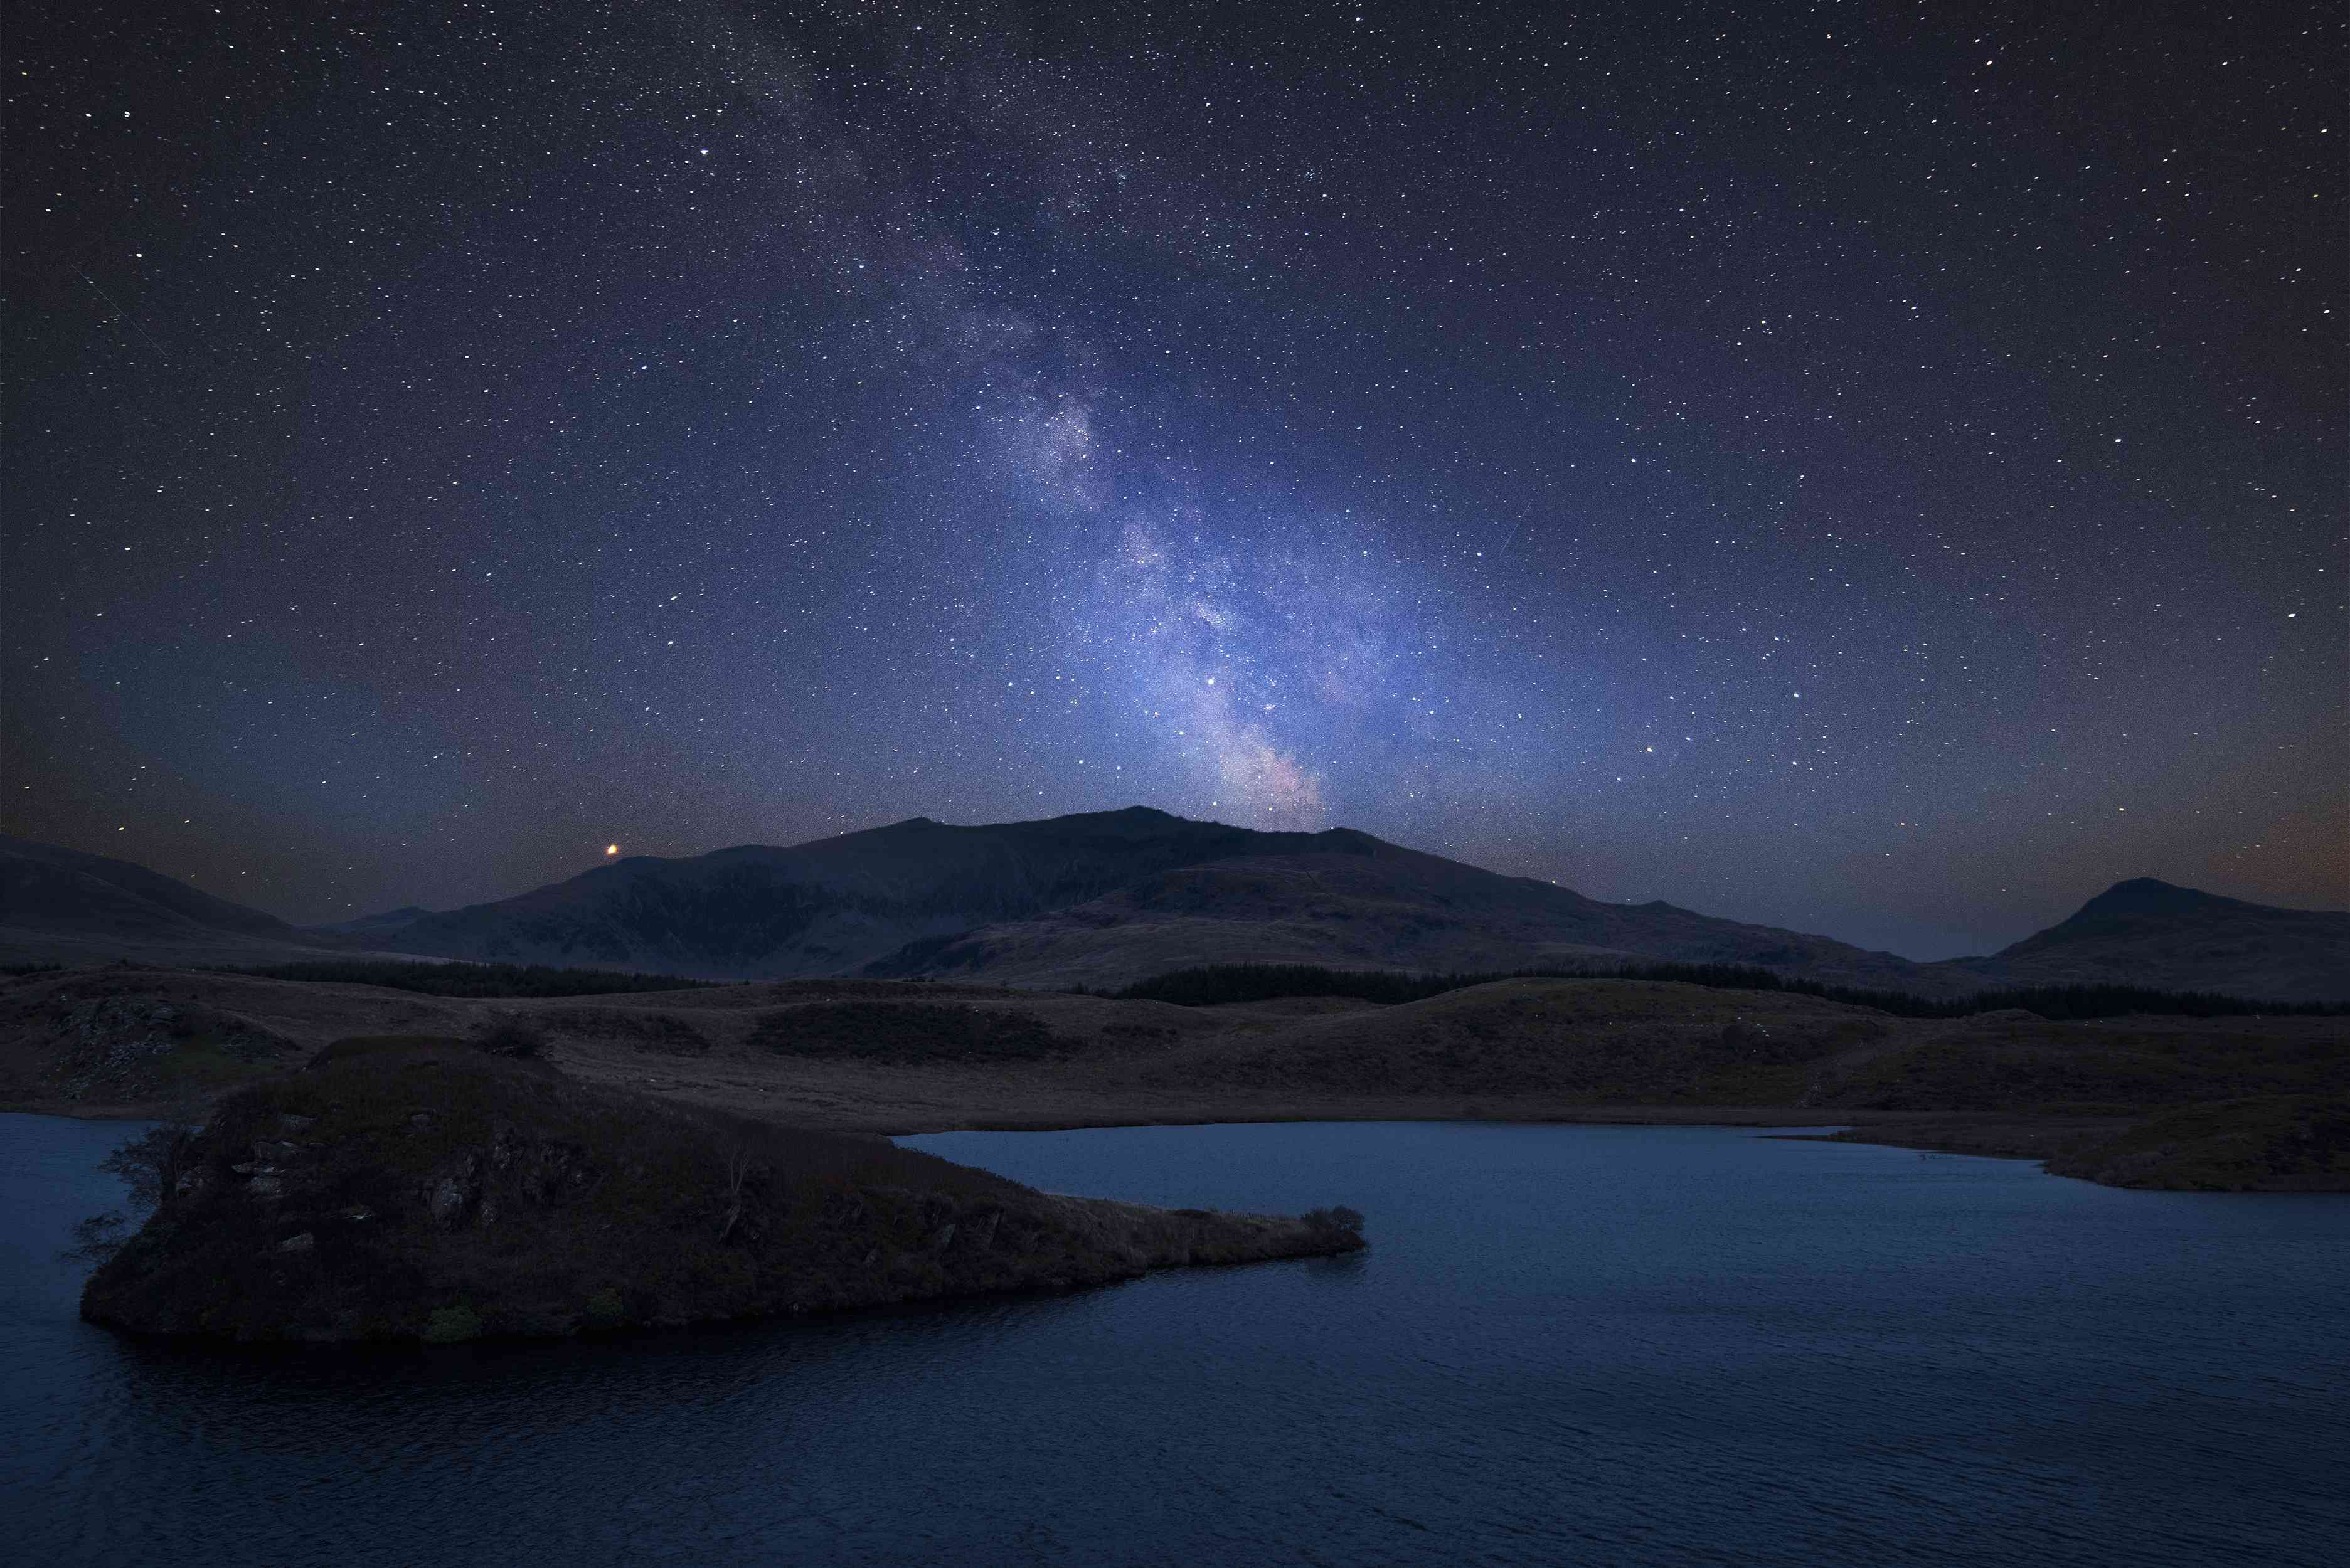 Starry sky over mountains and deep blue lake